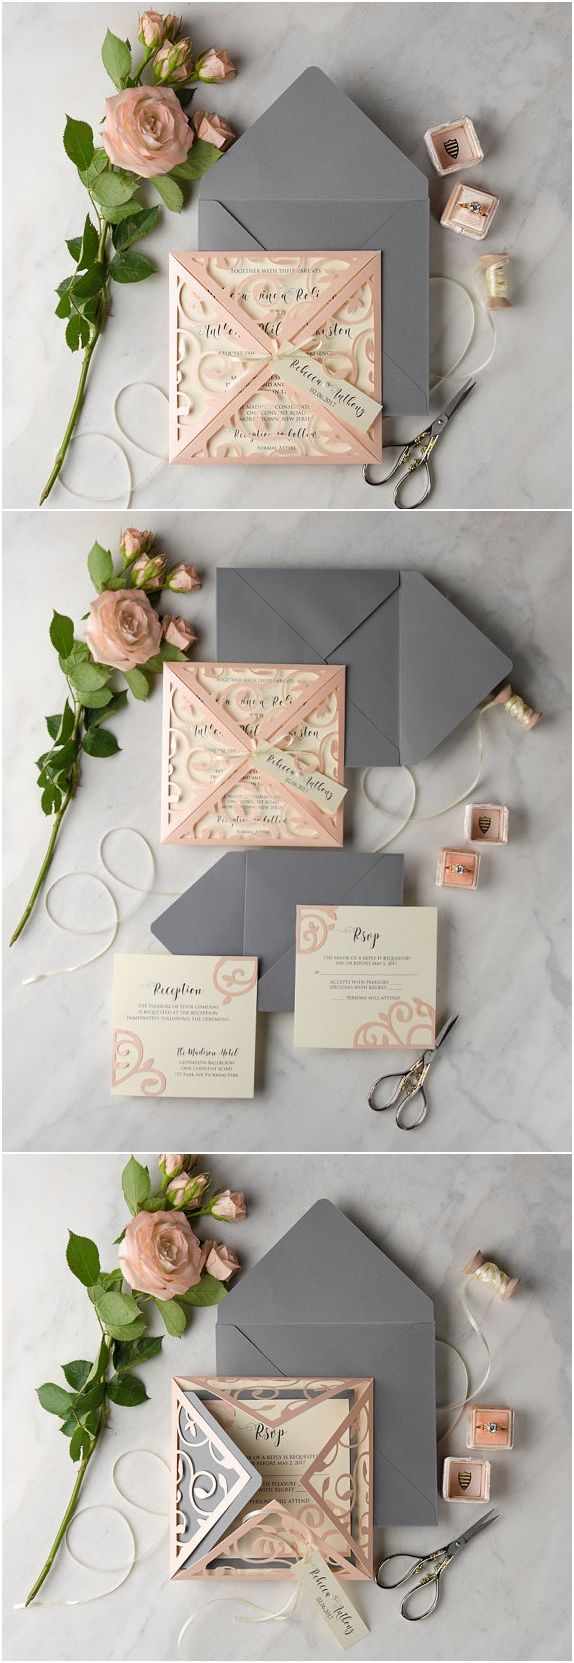 box wedding invitations wedding invitations with pictures 30 Our Absolutely Favorite Rustic Wedding Invitations